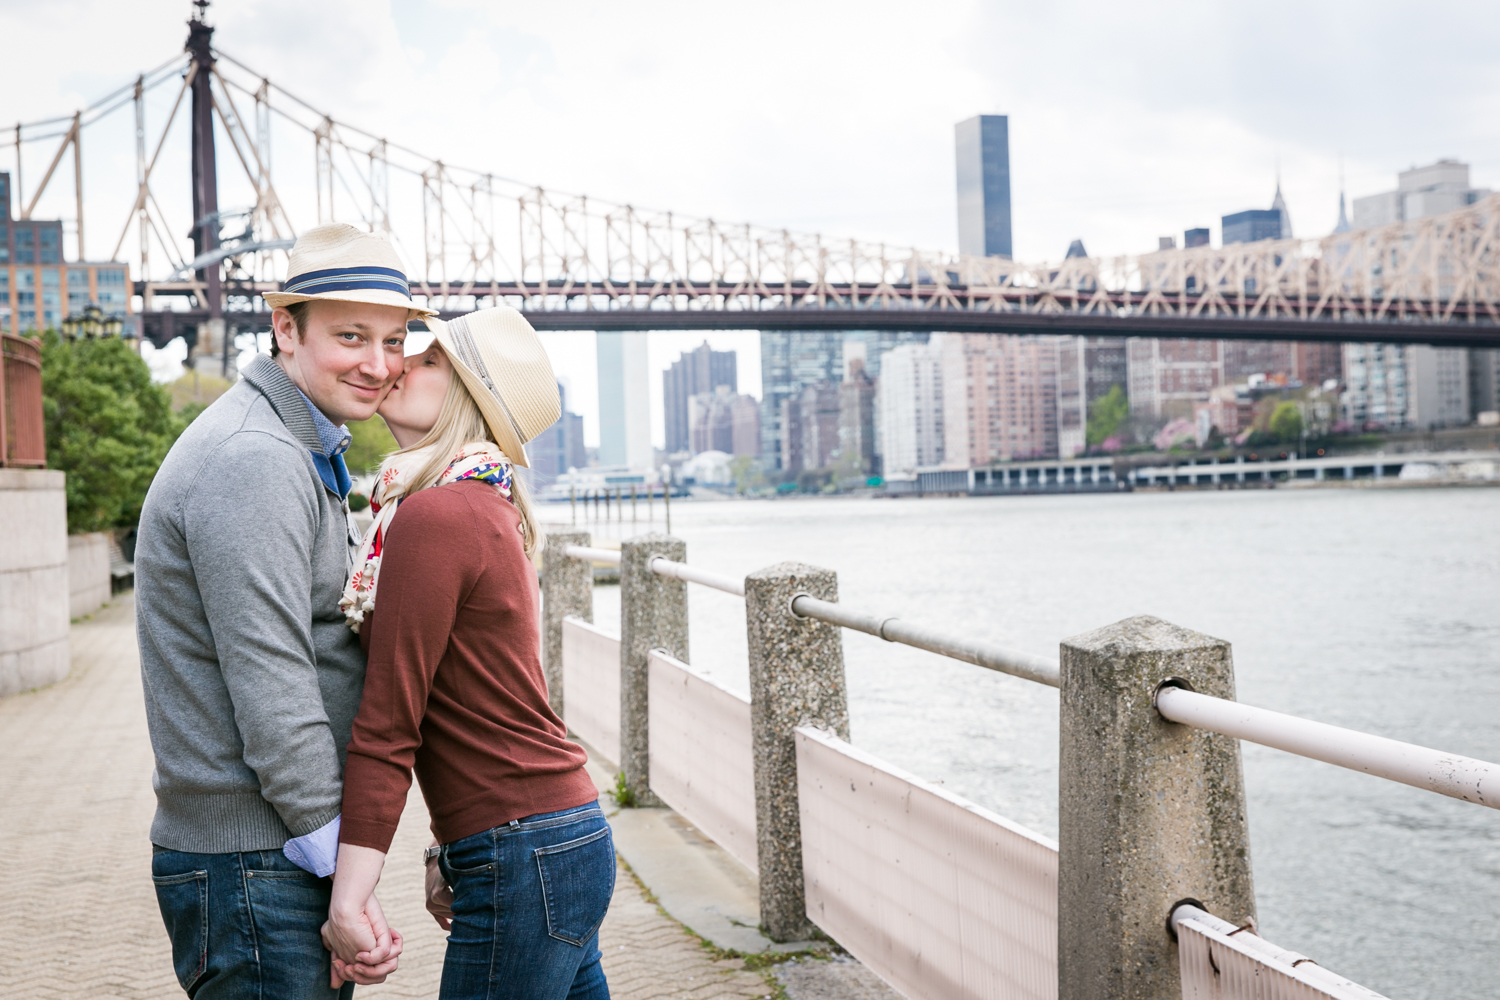 Woman kissing man on cheek during a Roosevelt Island engagement portrait session